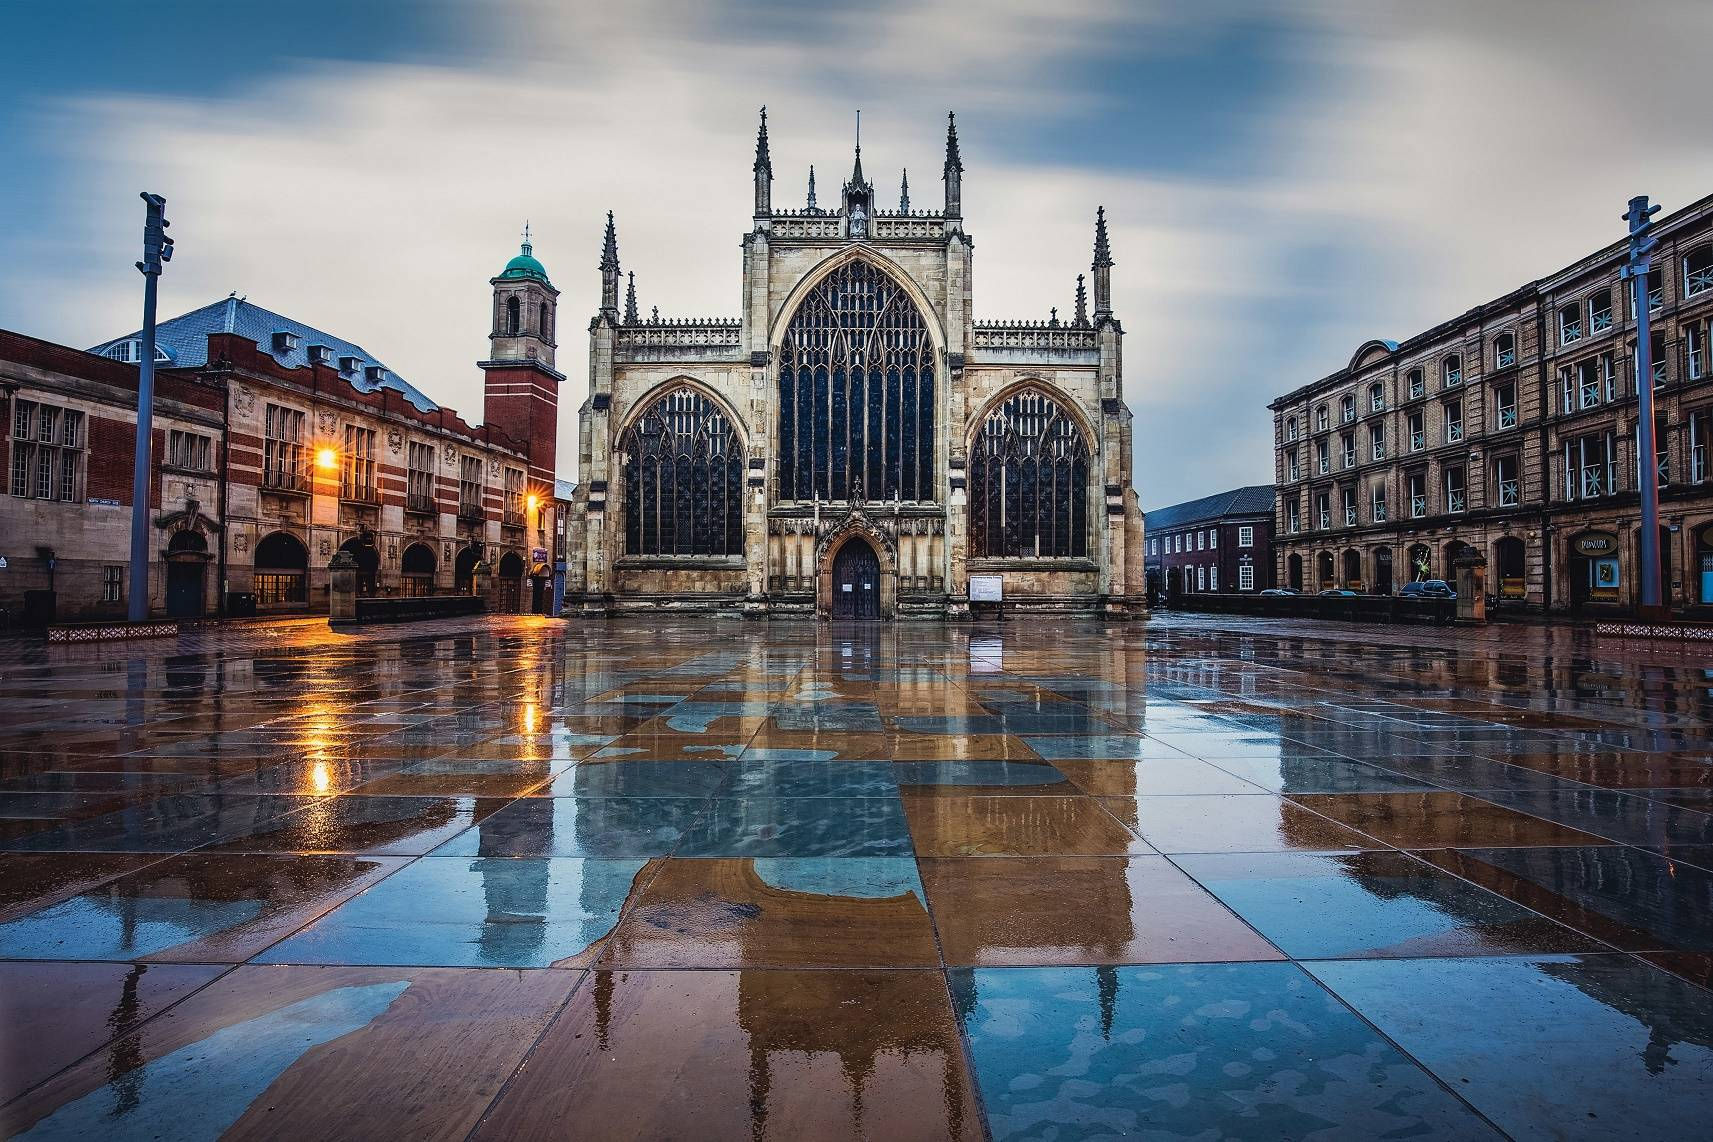 Hull Minster isthe largest parish church in England by floor area